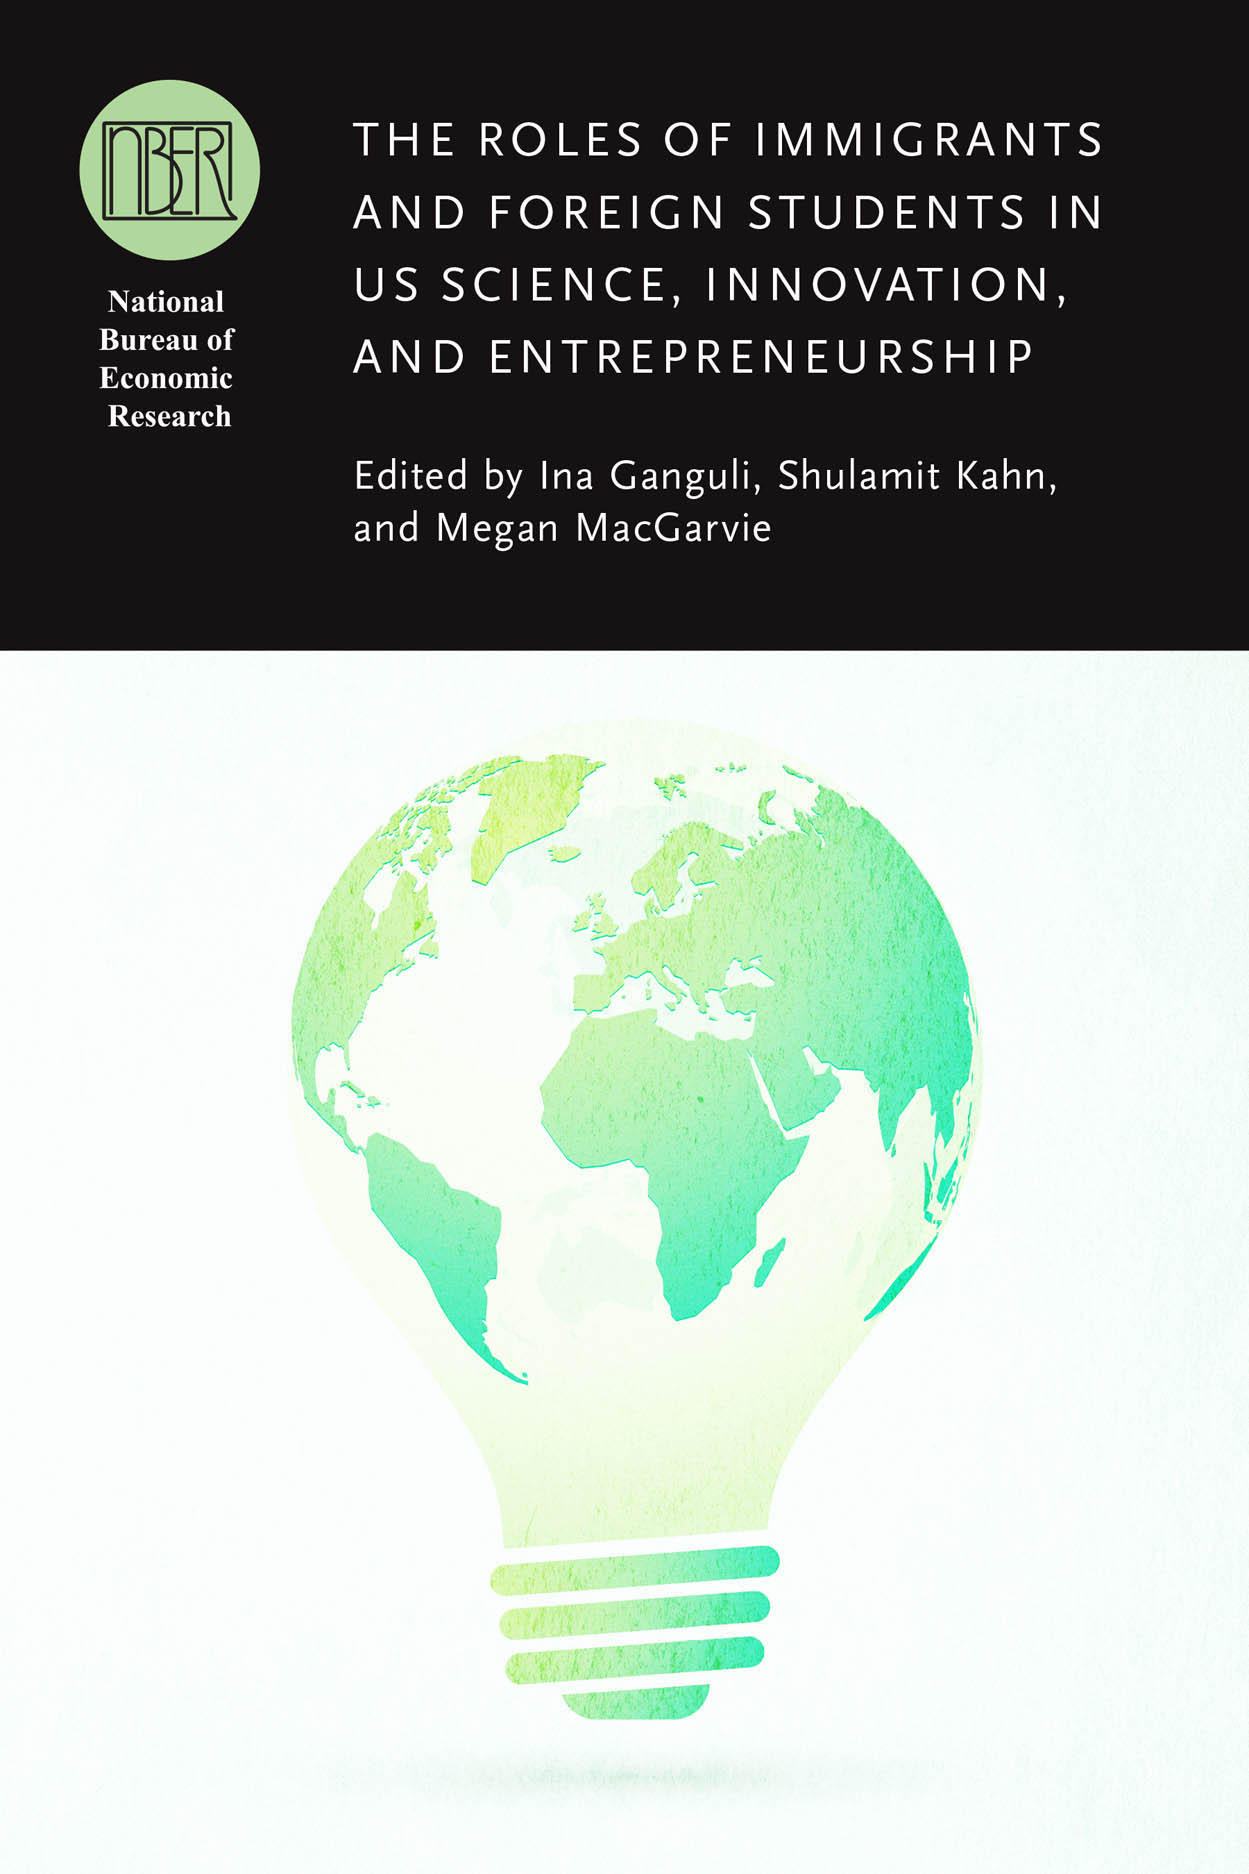 The Roles of Immigrants and Foreign Students in US Science, Innovation, and Entrepreneurship